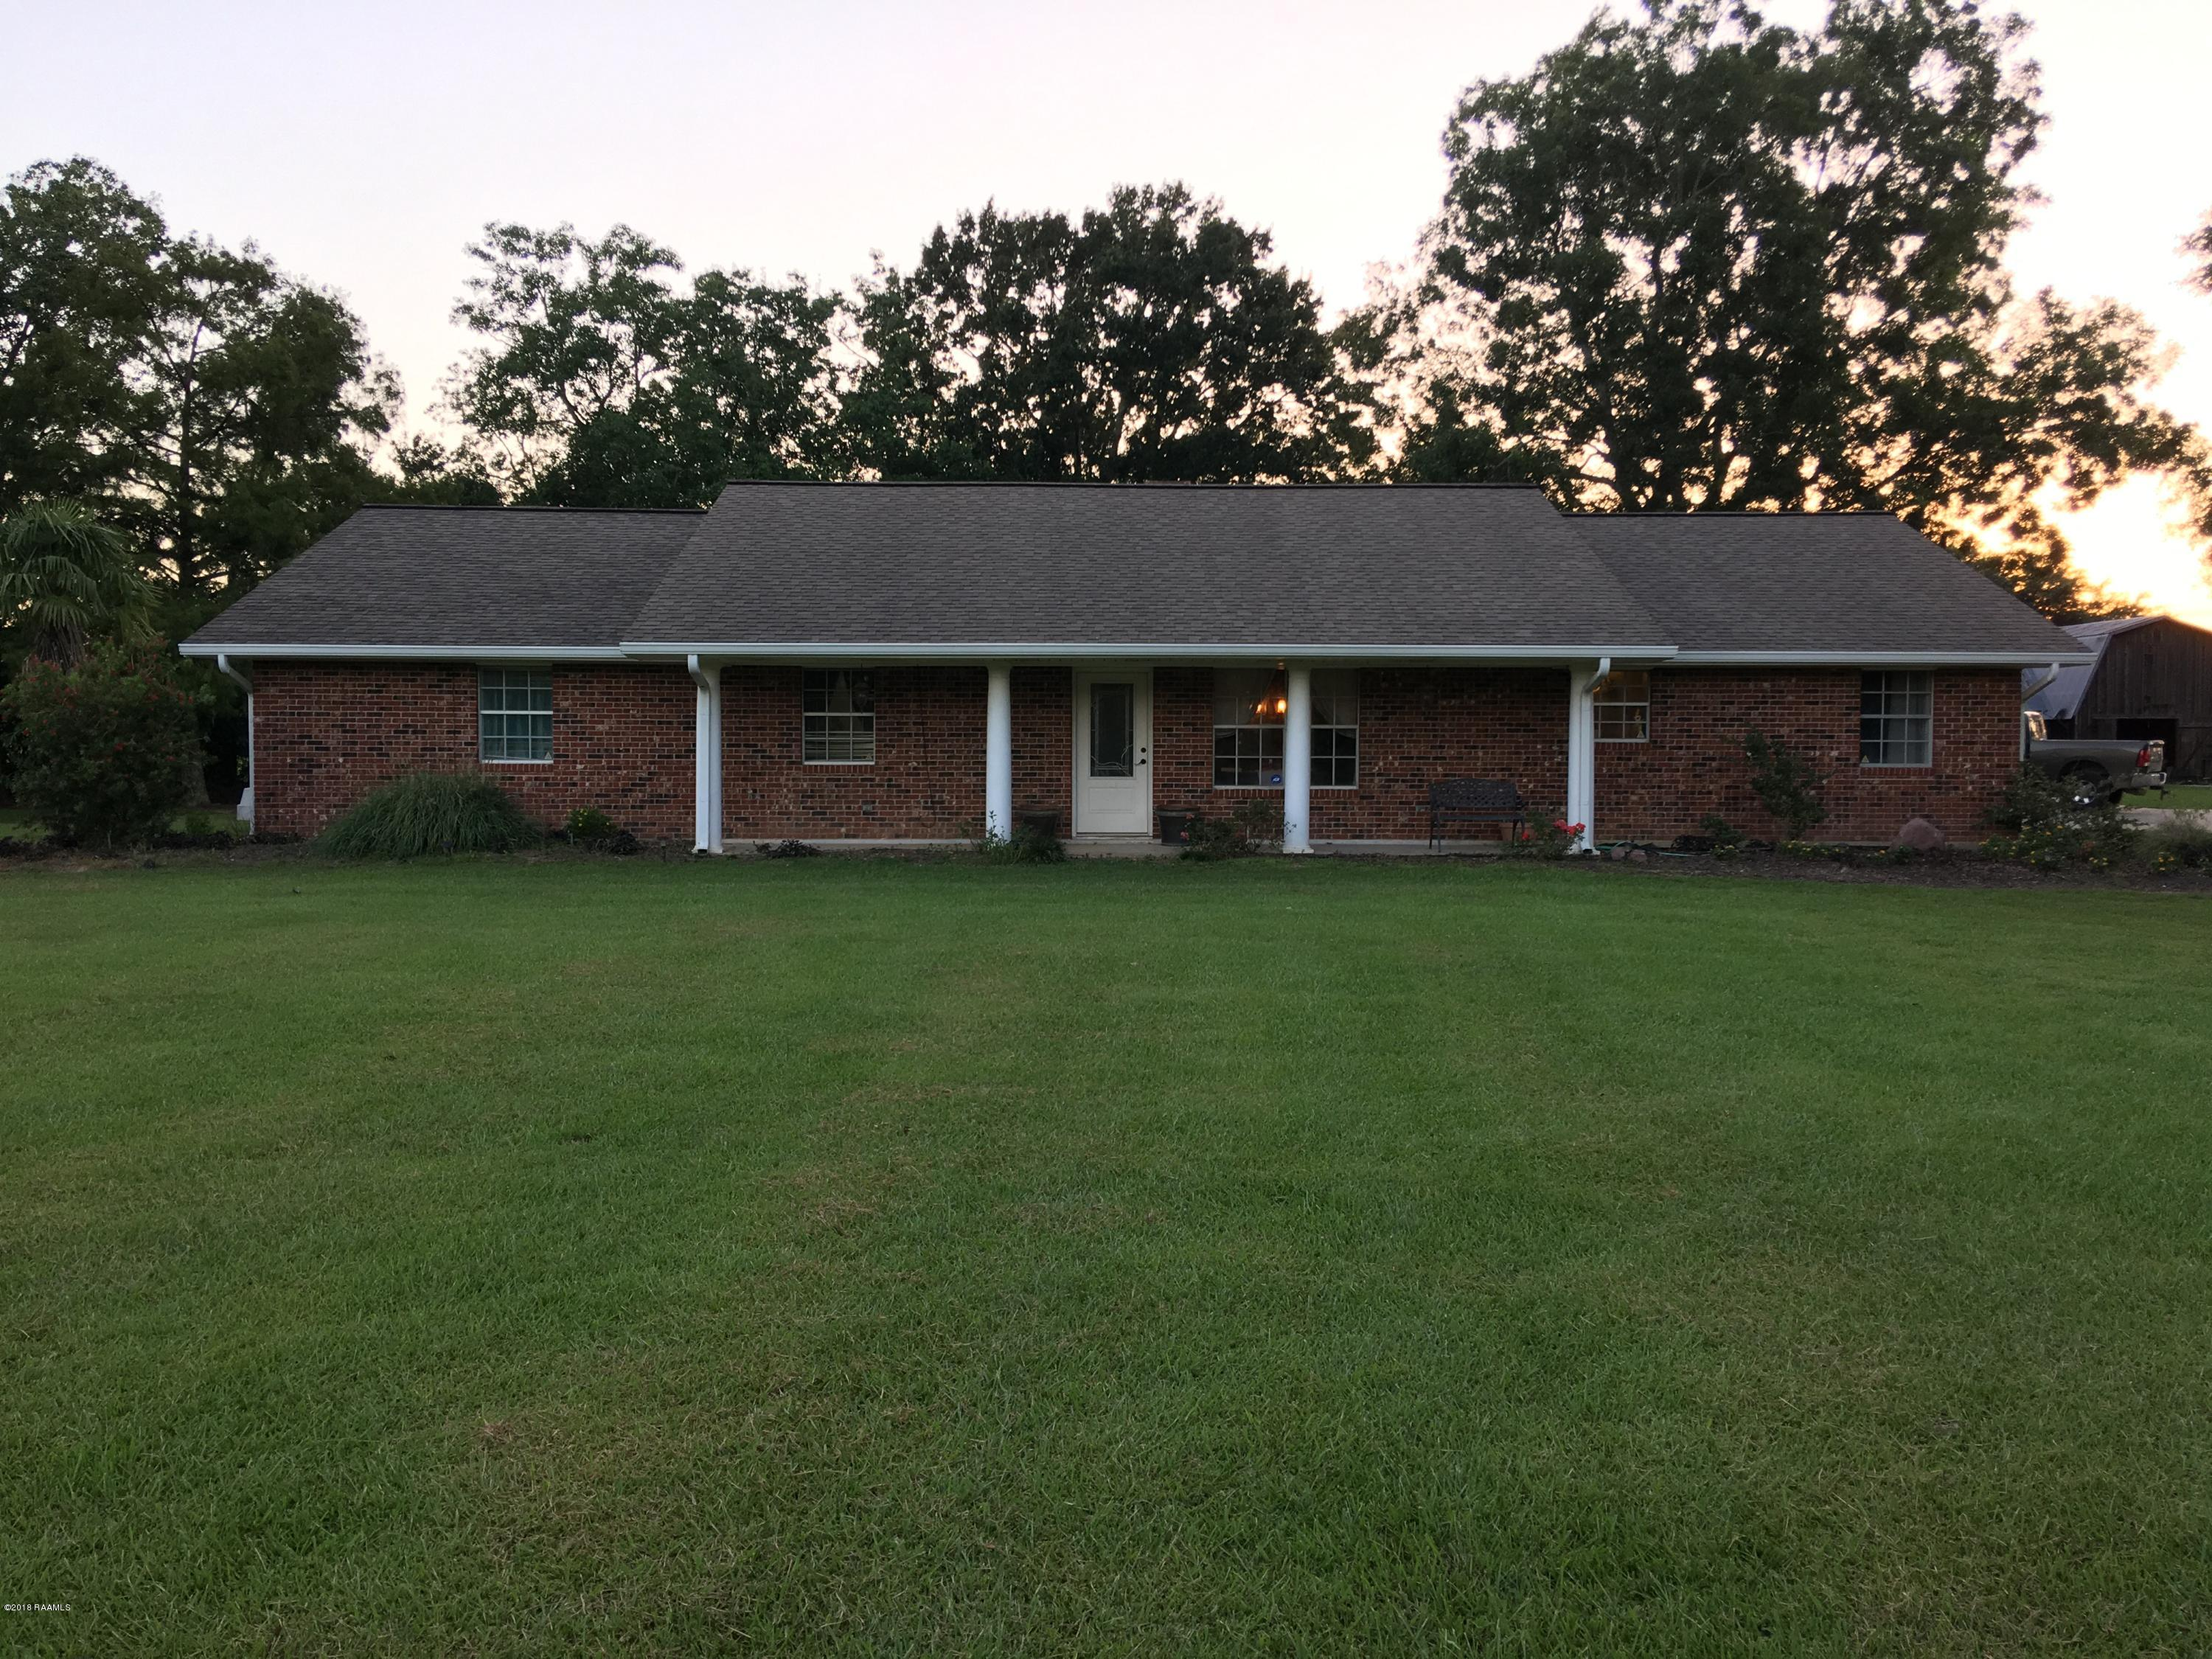 3321 Evangeline, Jennings, LA 70546 Photo #1